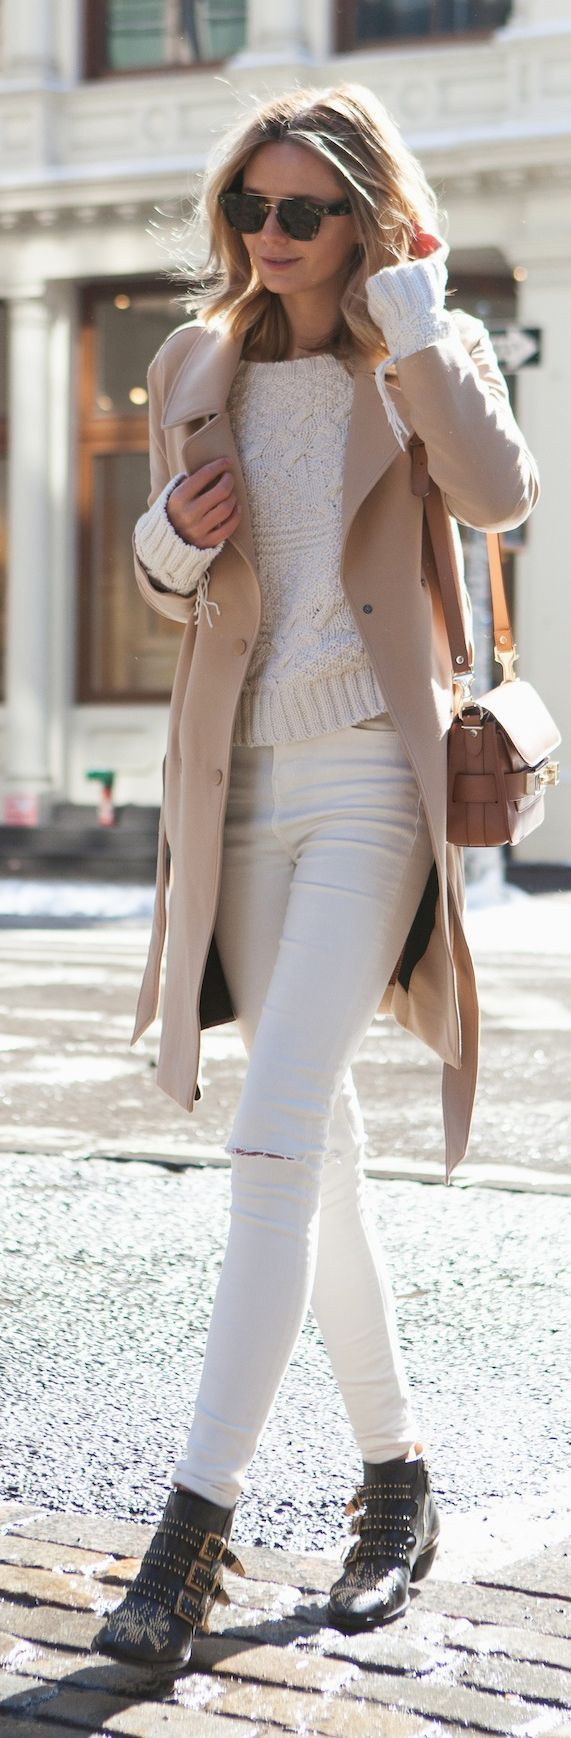 White + camel - great way to make white jeans/pants work for winter. Top with a great white sweater and camel jacket/nude shoes.